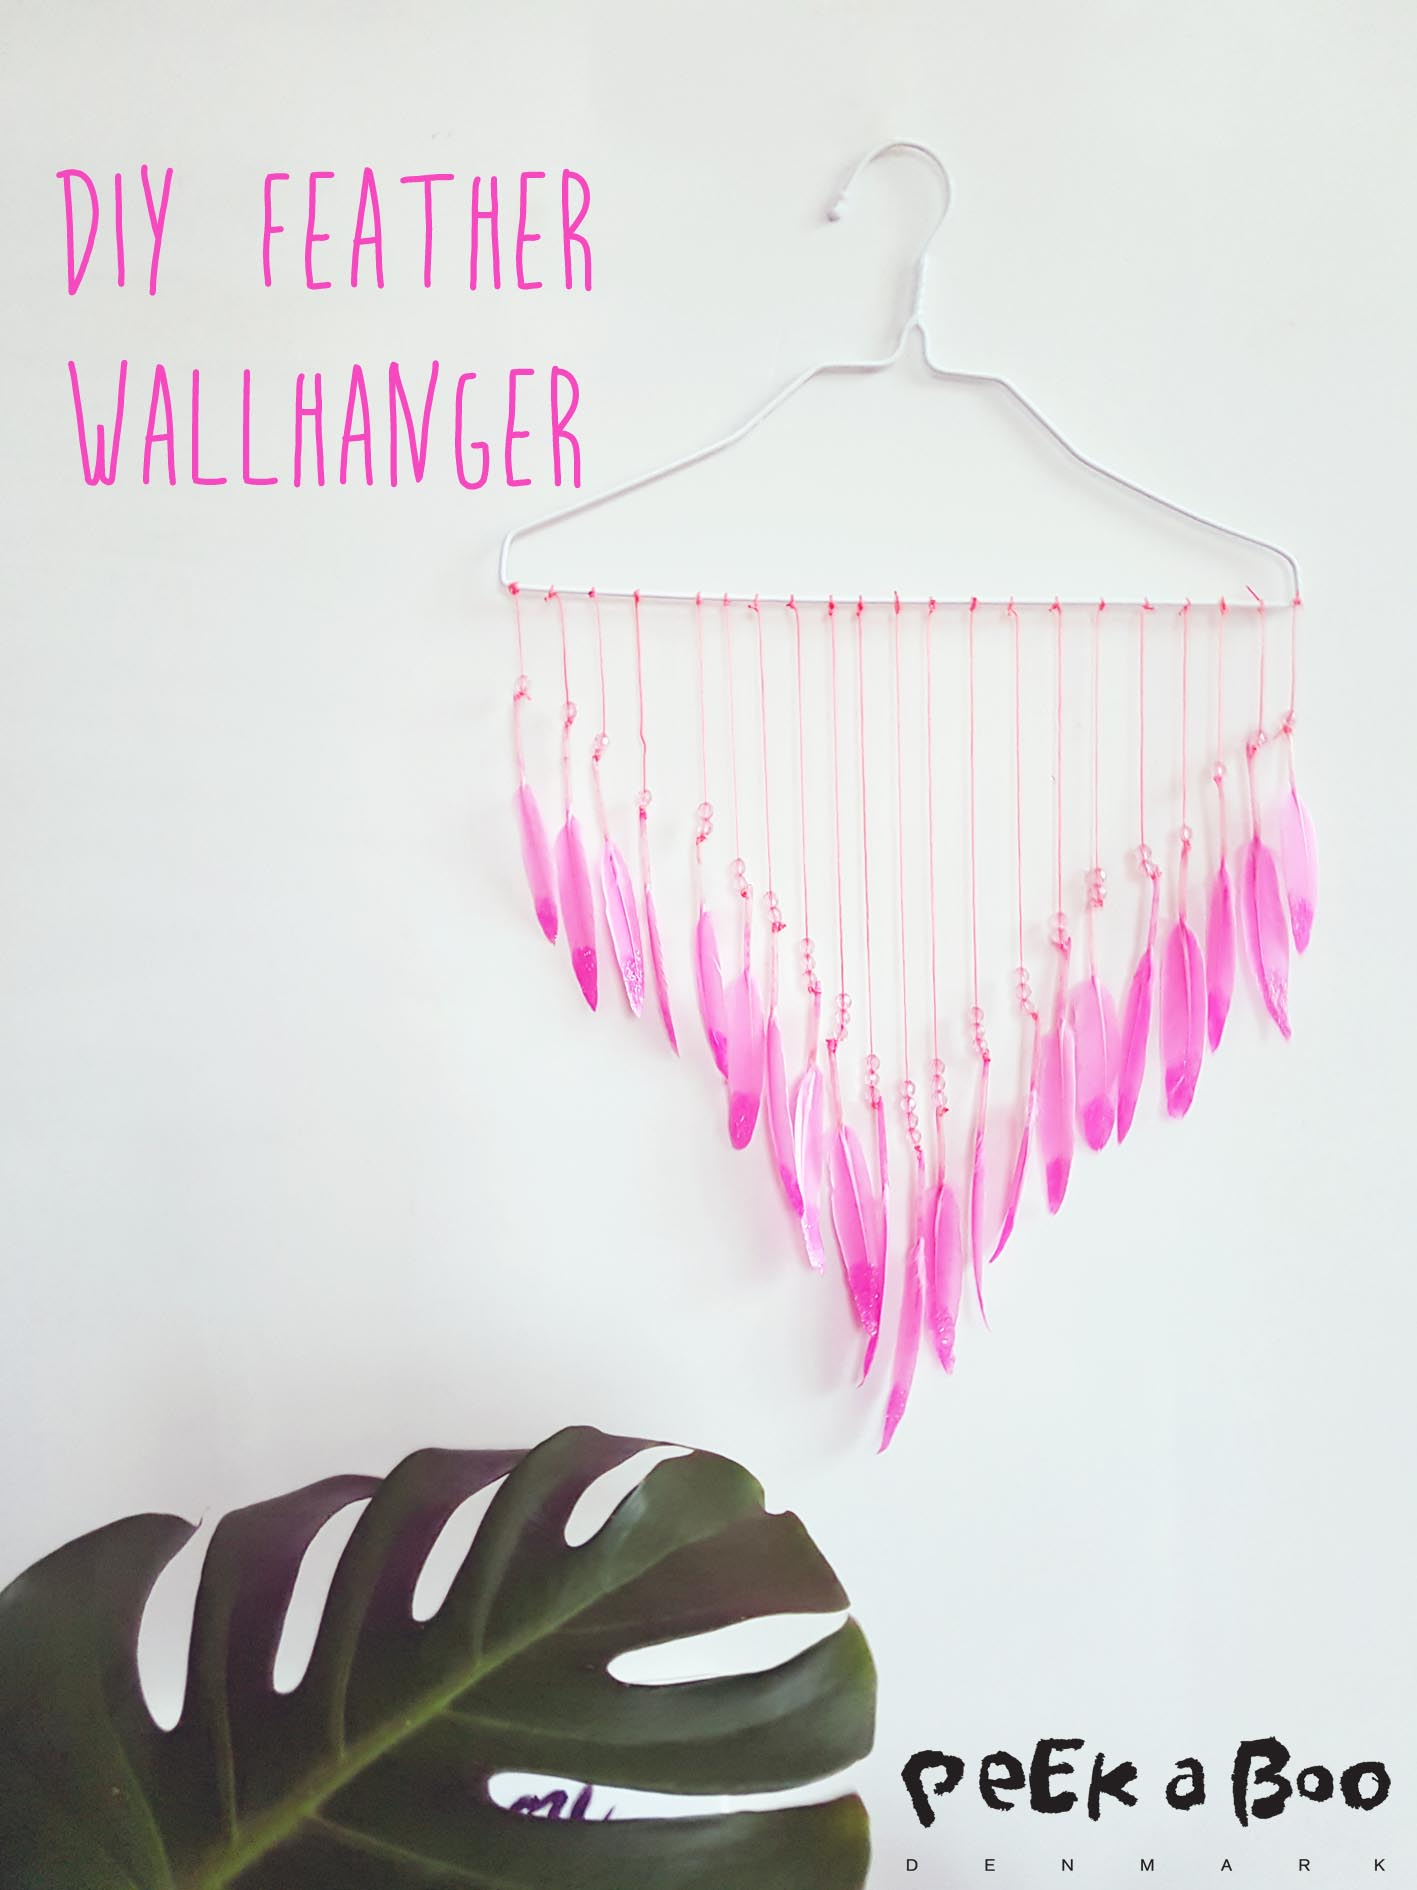 wallhanger with pink feathers made for Flying Tiger